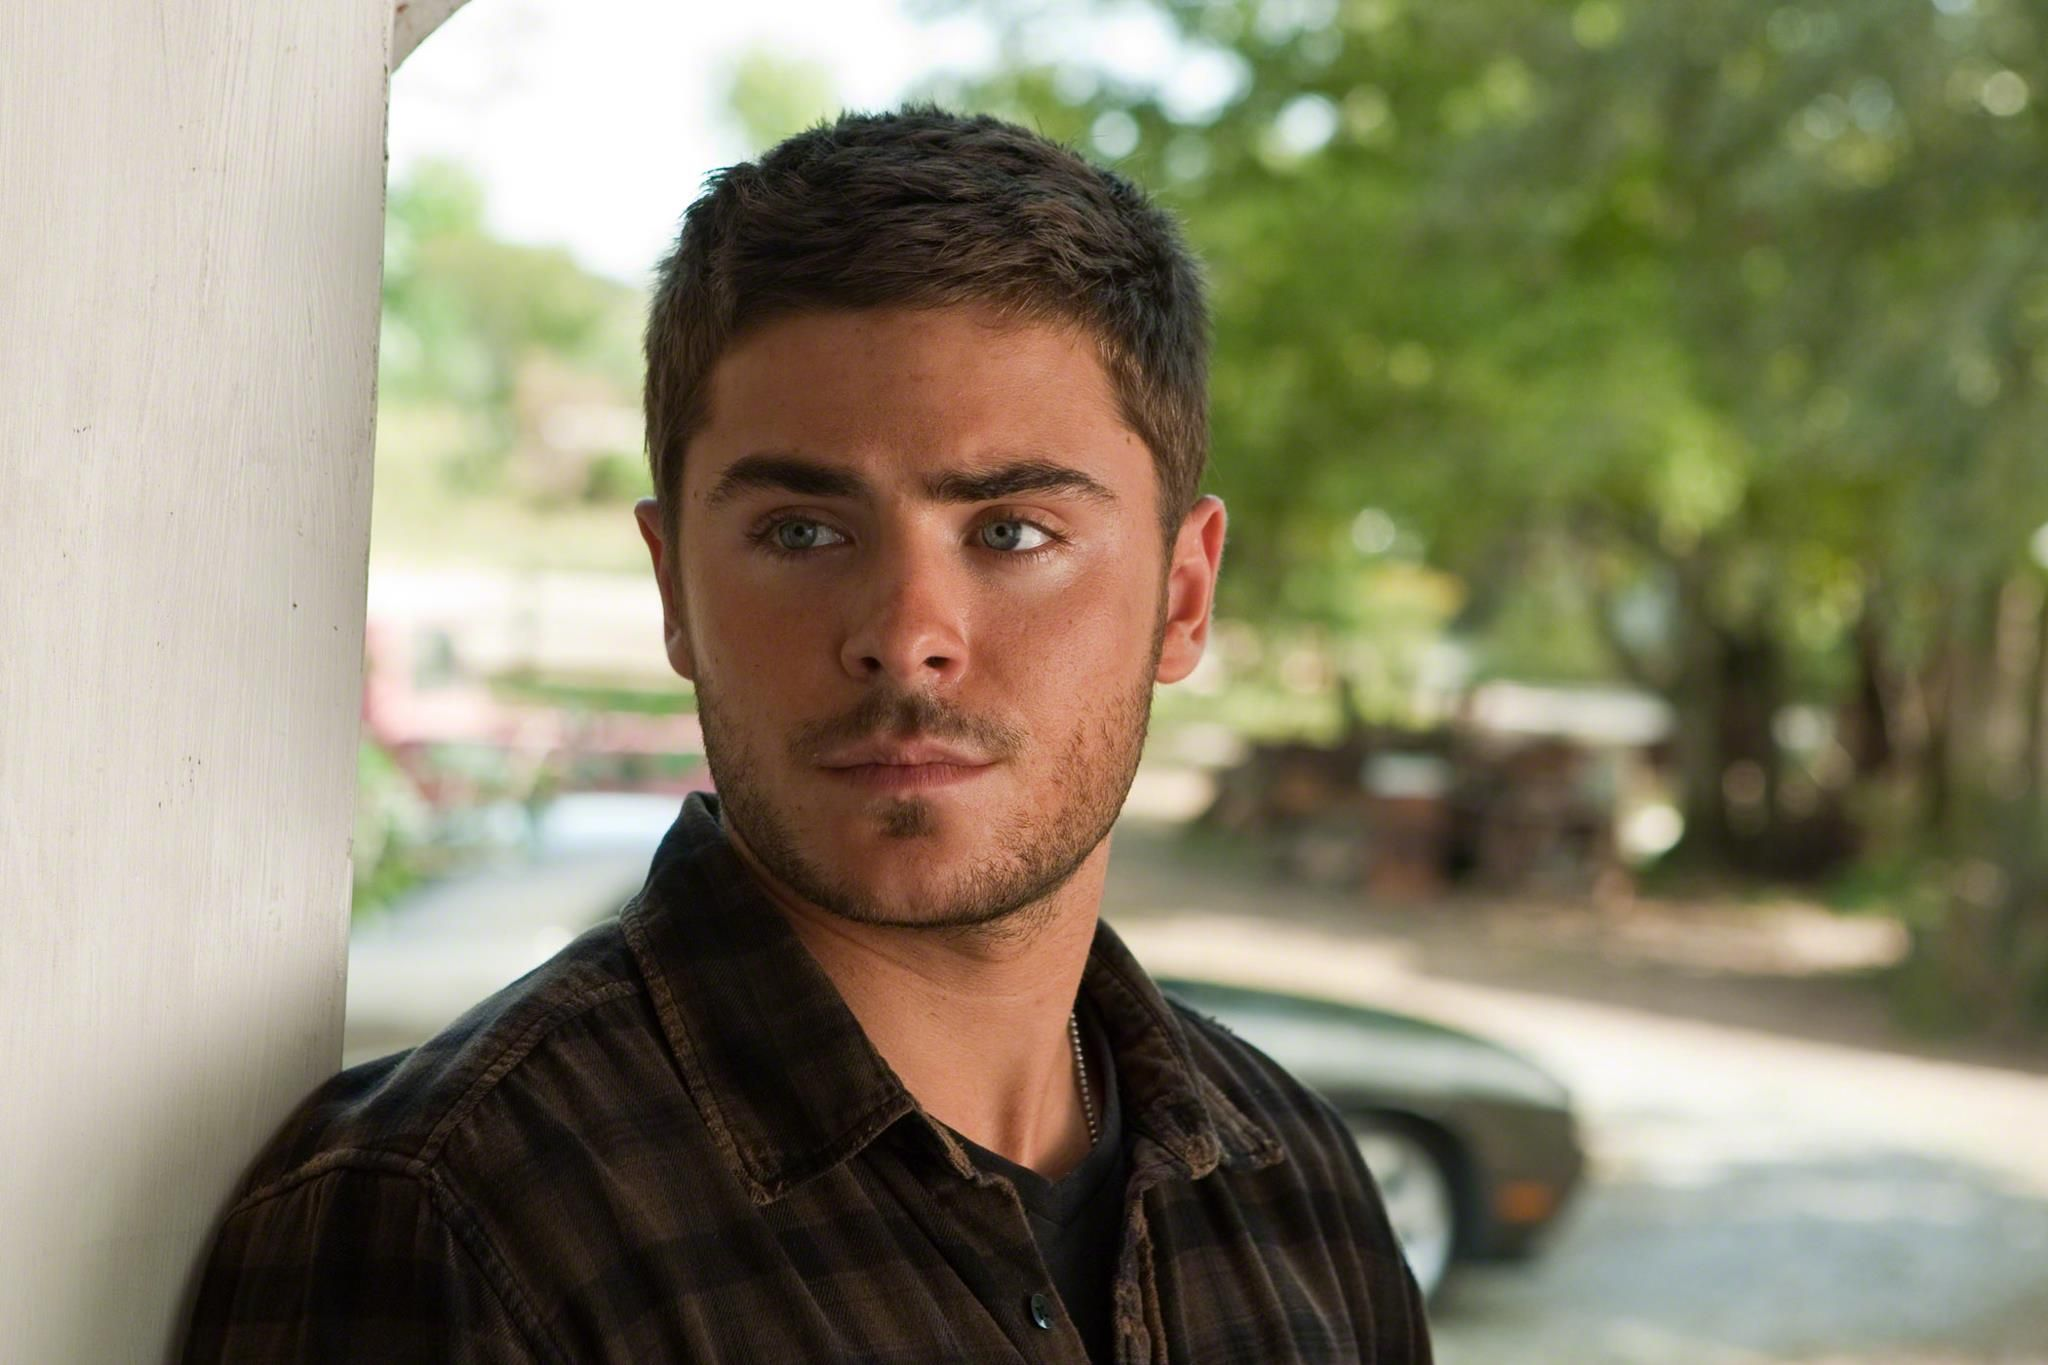 Pin By Zac Efron News On The Lucky One Movie Stills Zac Efron Movies The Lucky One Movie Zac Efron